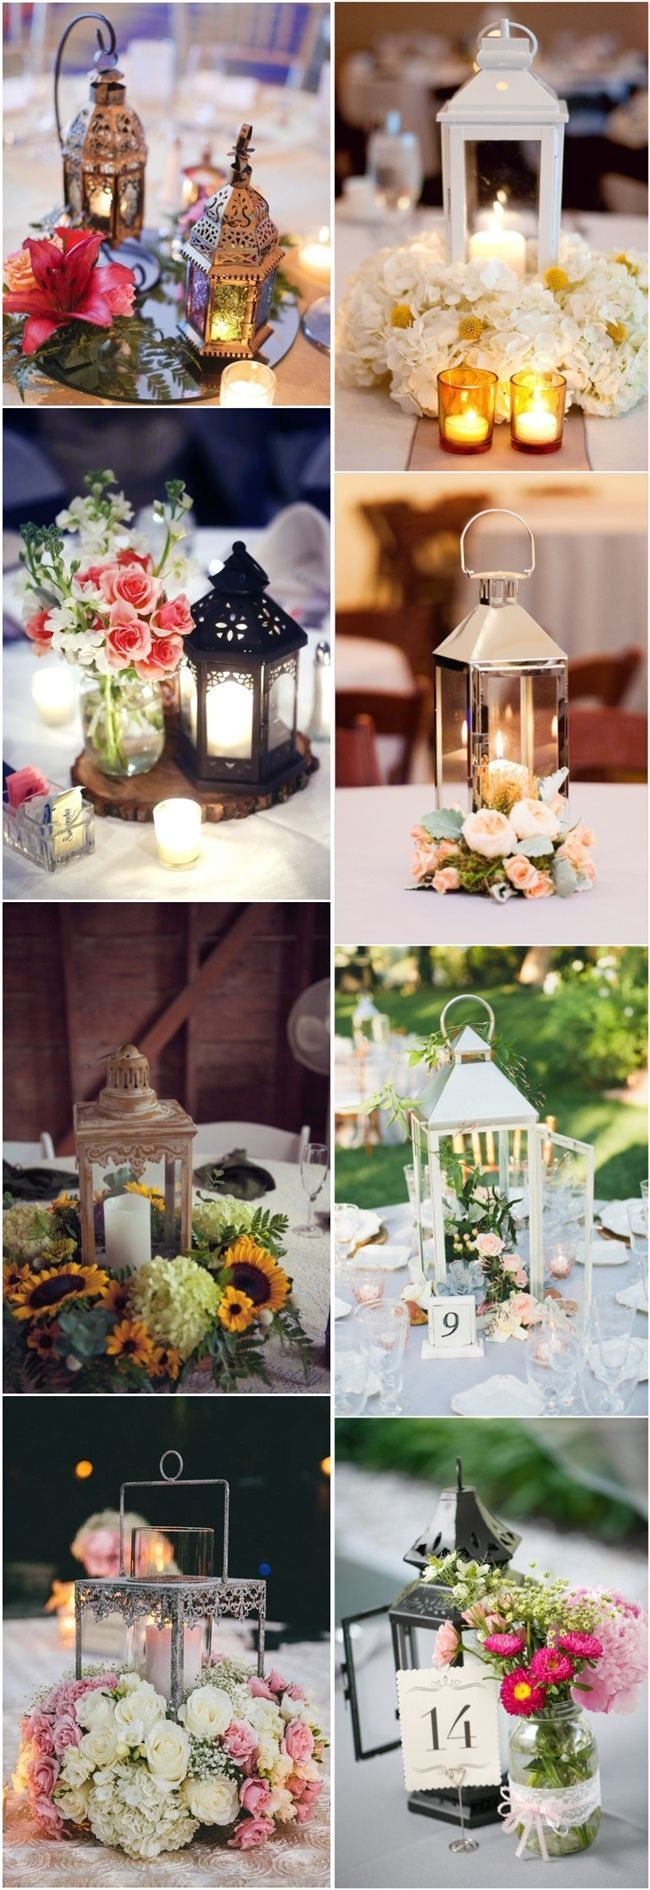 best weddingwednesday images on pinterest wedding ideas